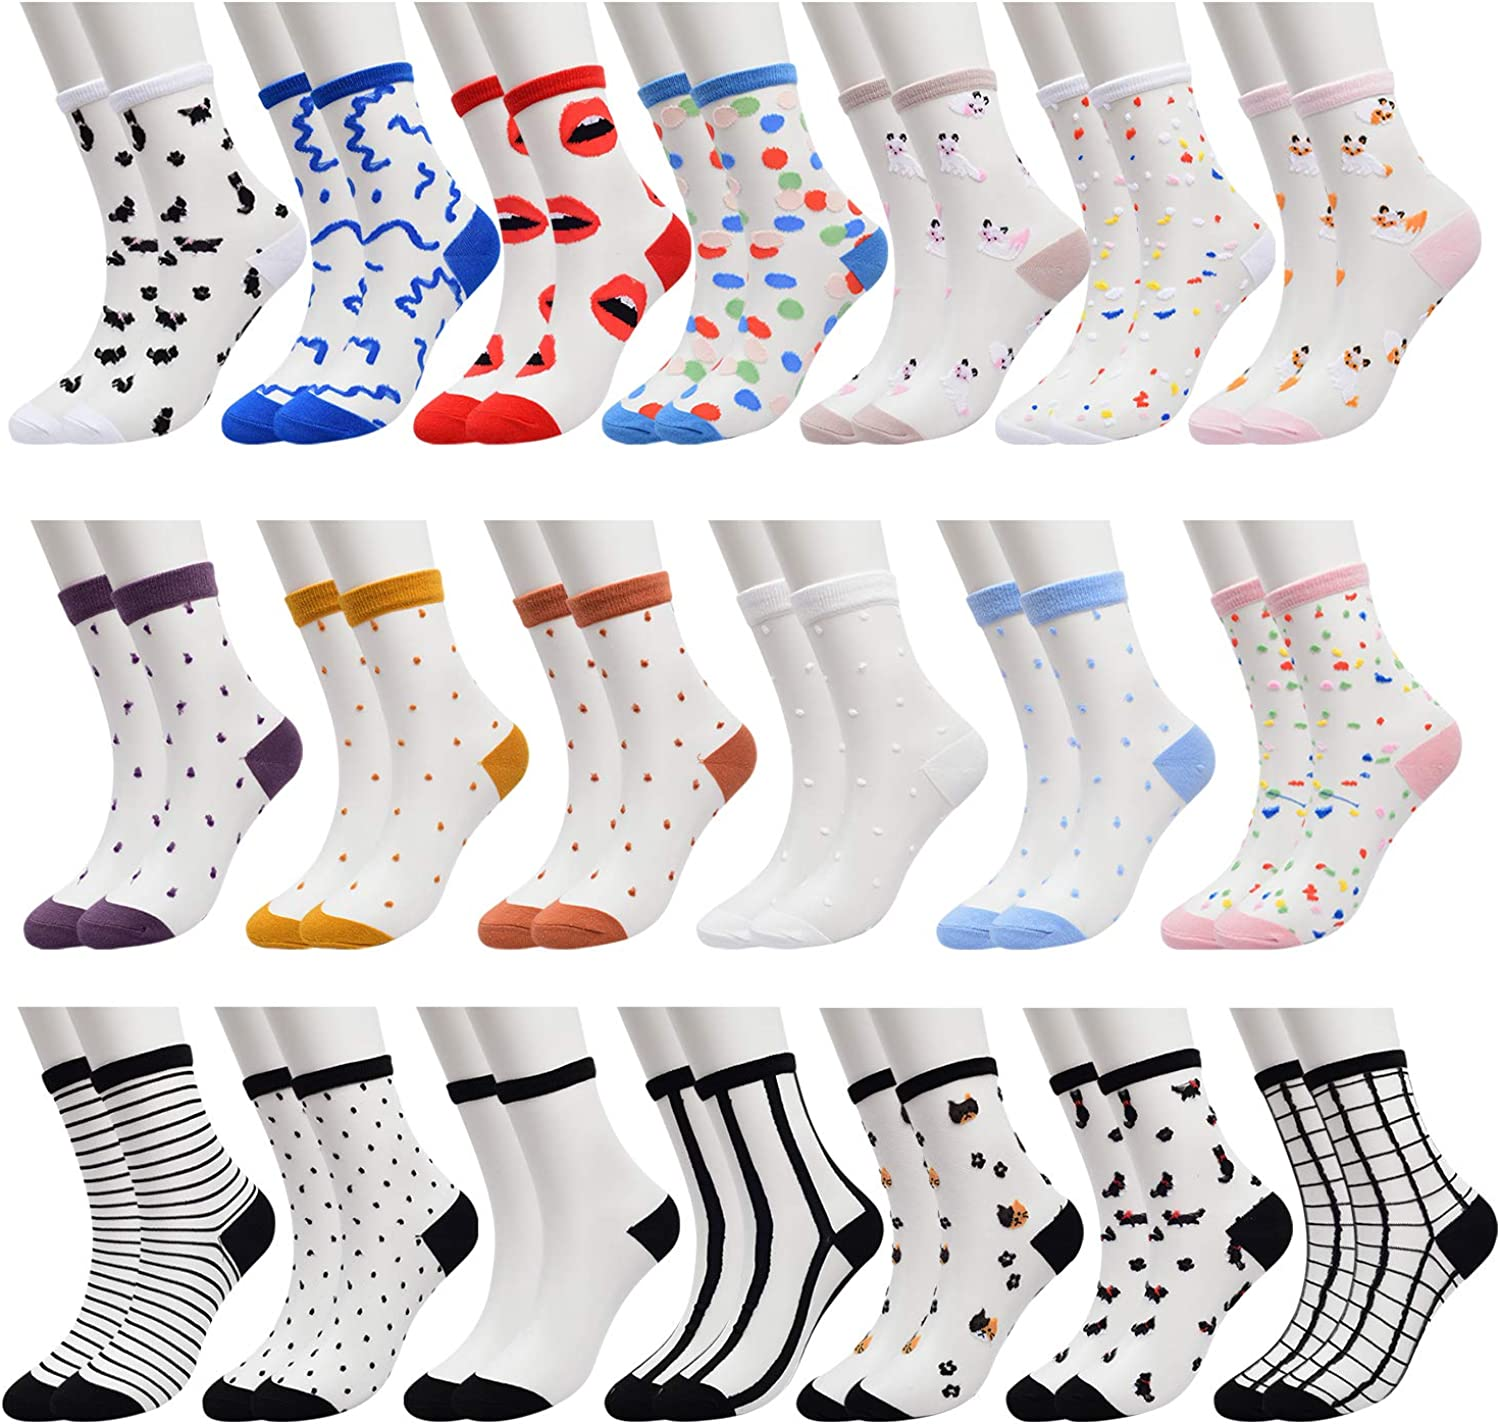 Super Cute Fishnet Mesh Ankle Socks Lace Big Bow Black White Red Grey Floral